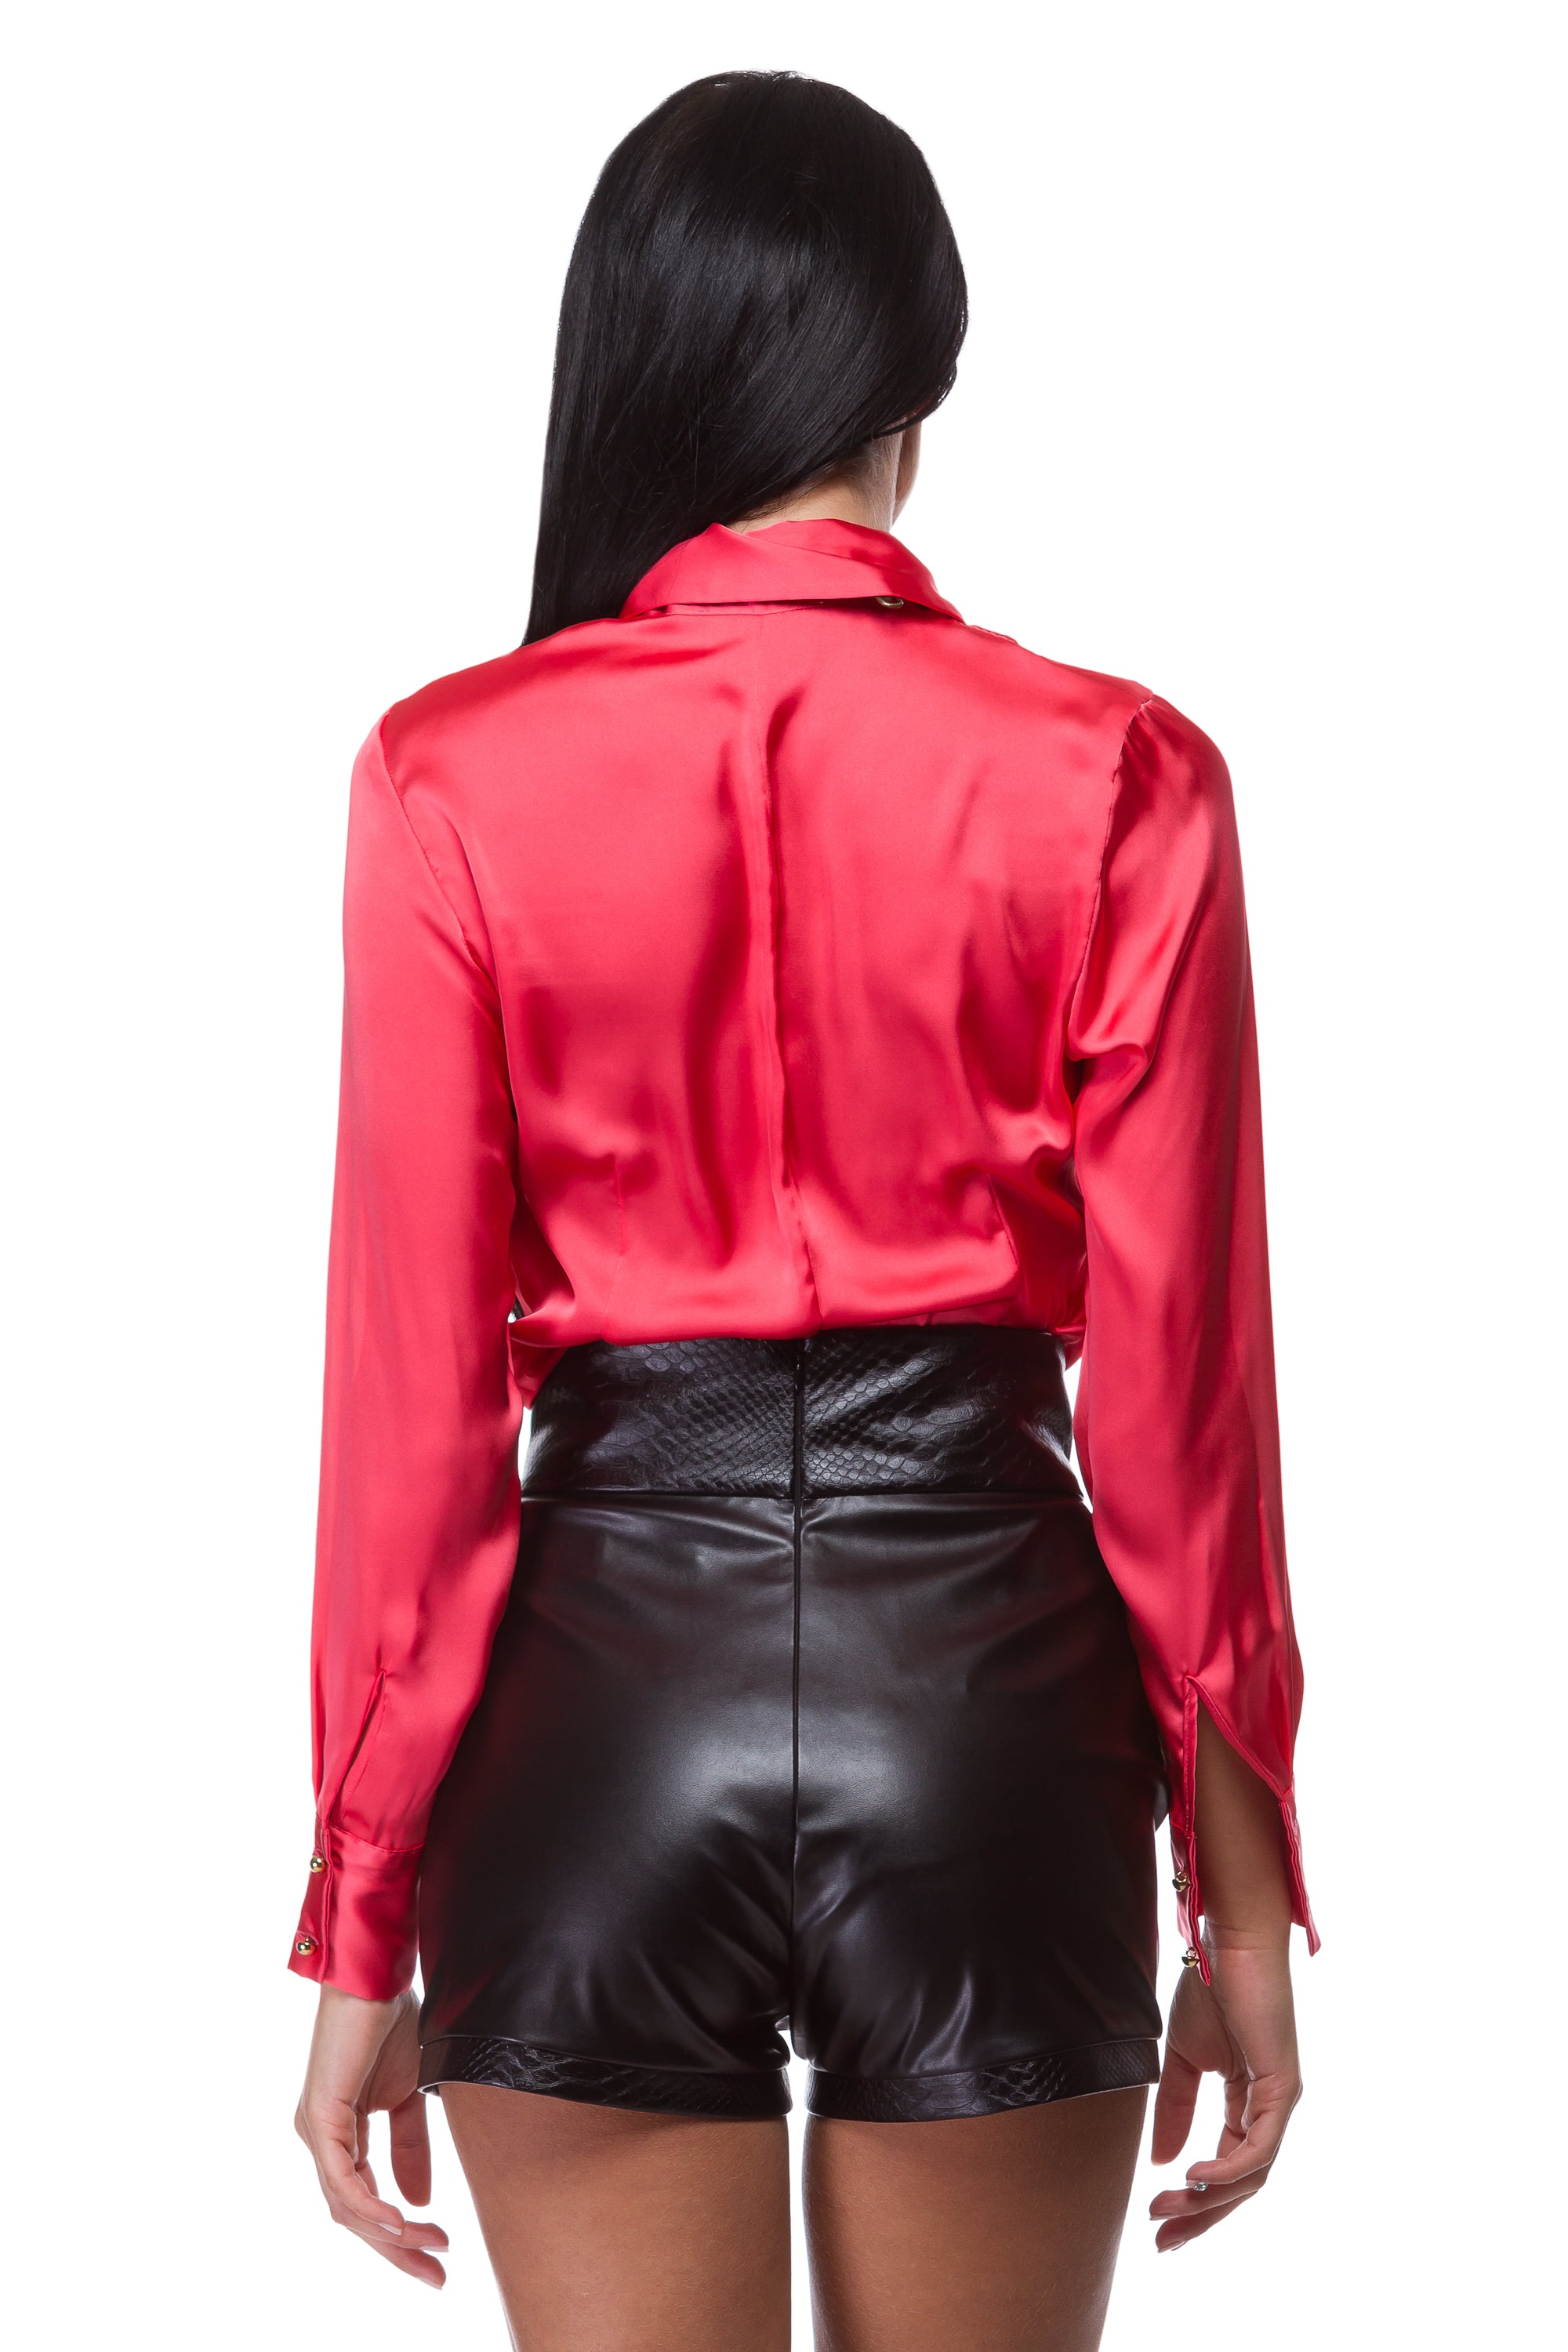 Red shirt with wide collar and lapels WSH-0005